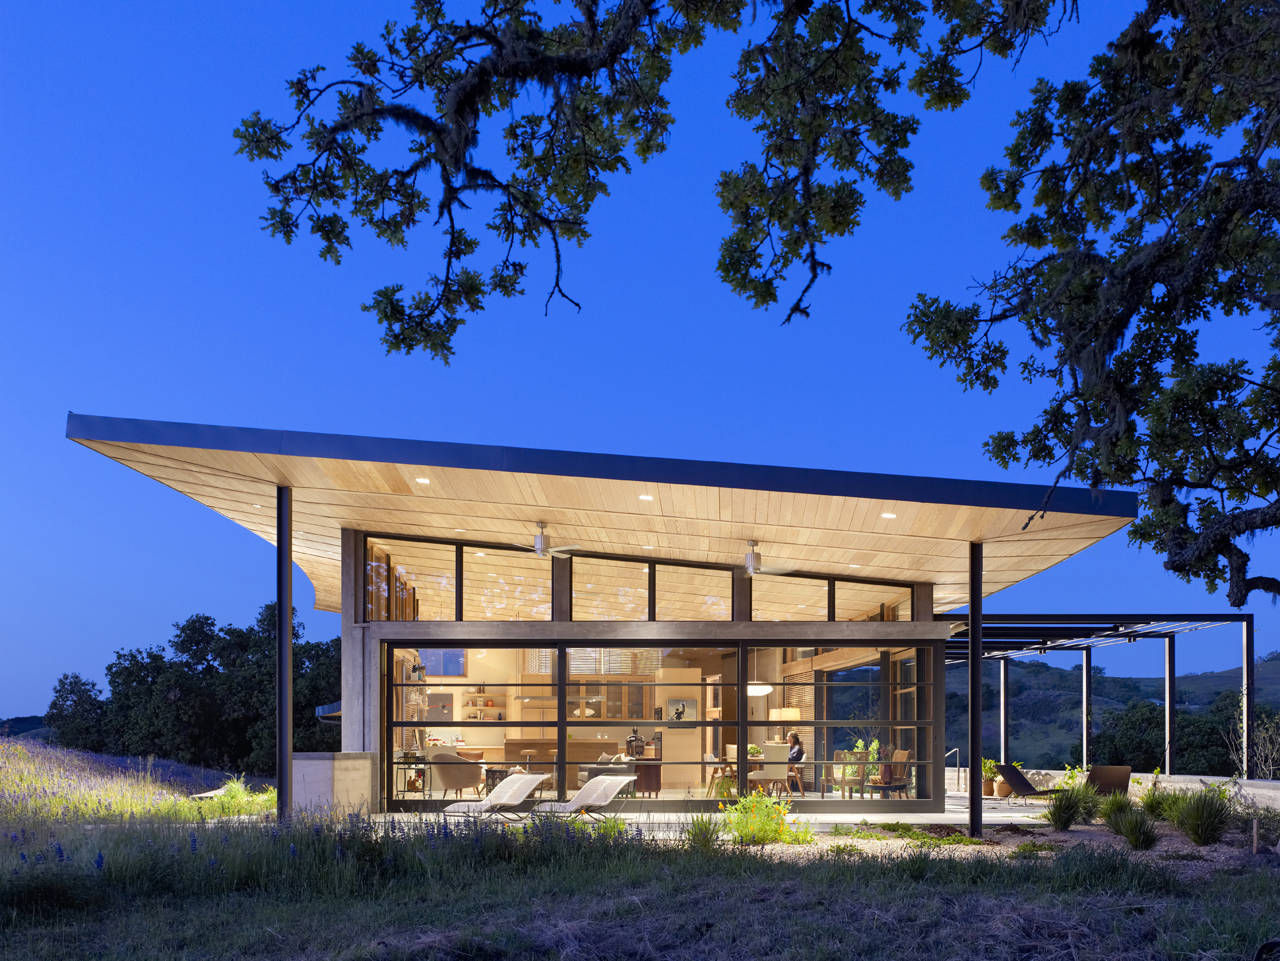 Evening Lighting, Caterpillar House in Carmel, California by Feldman Architecture